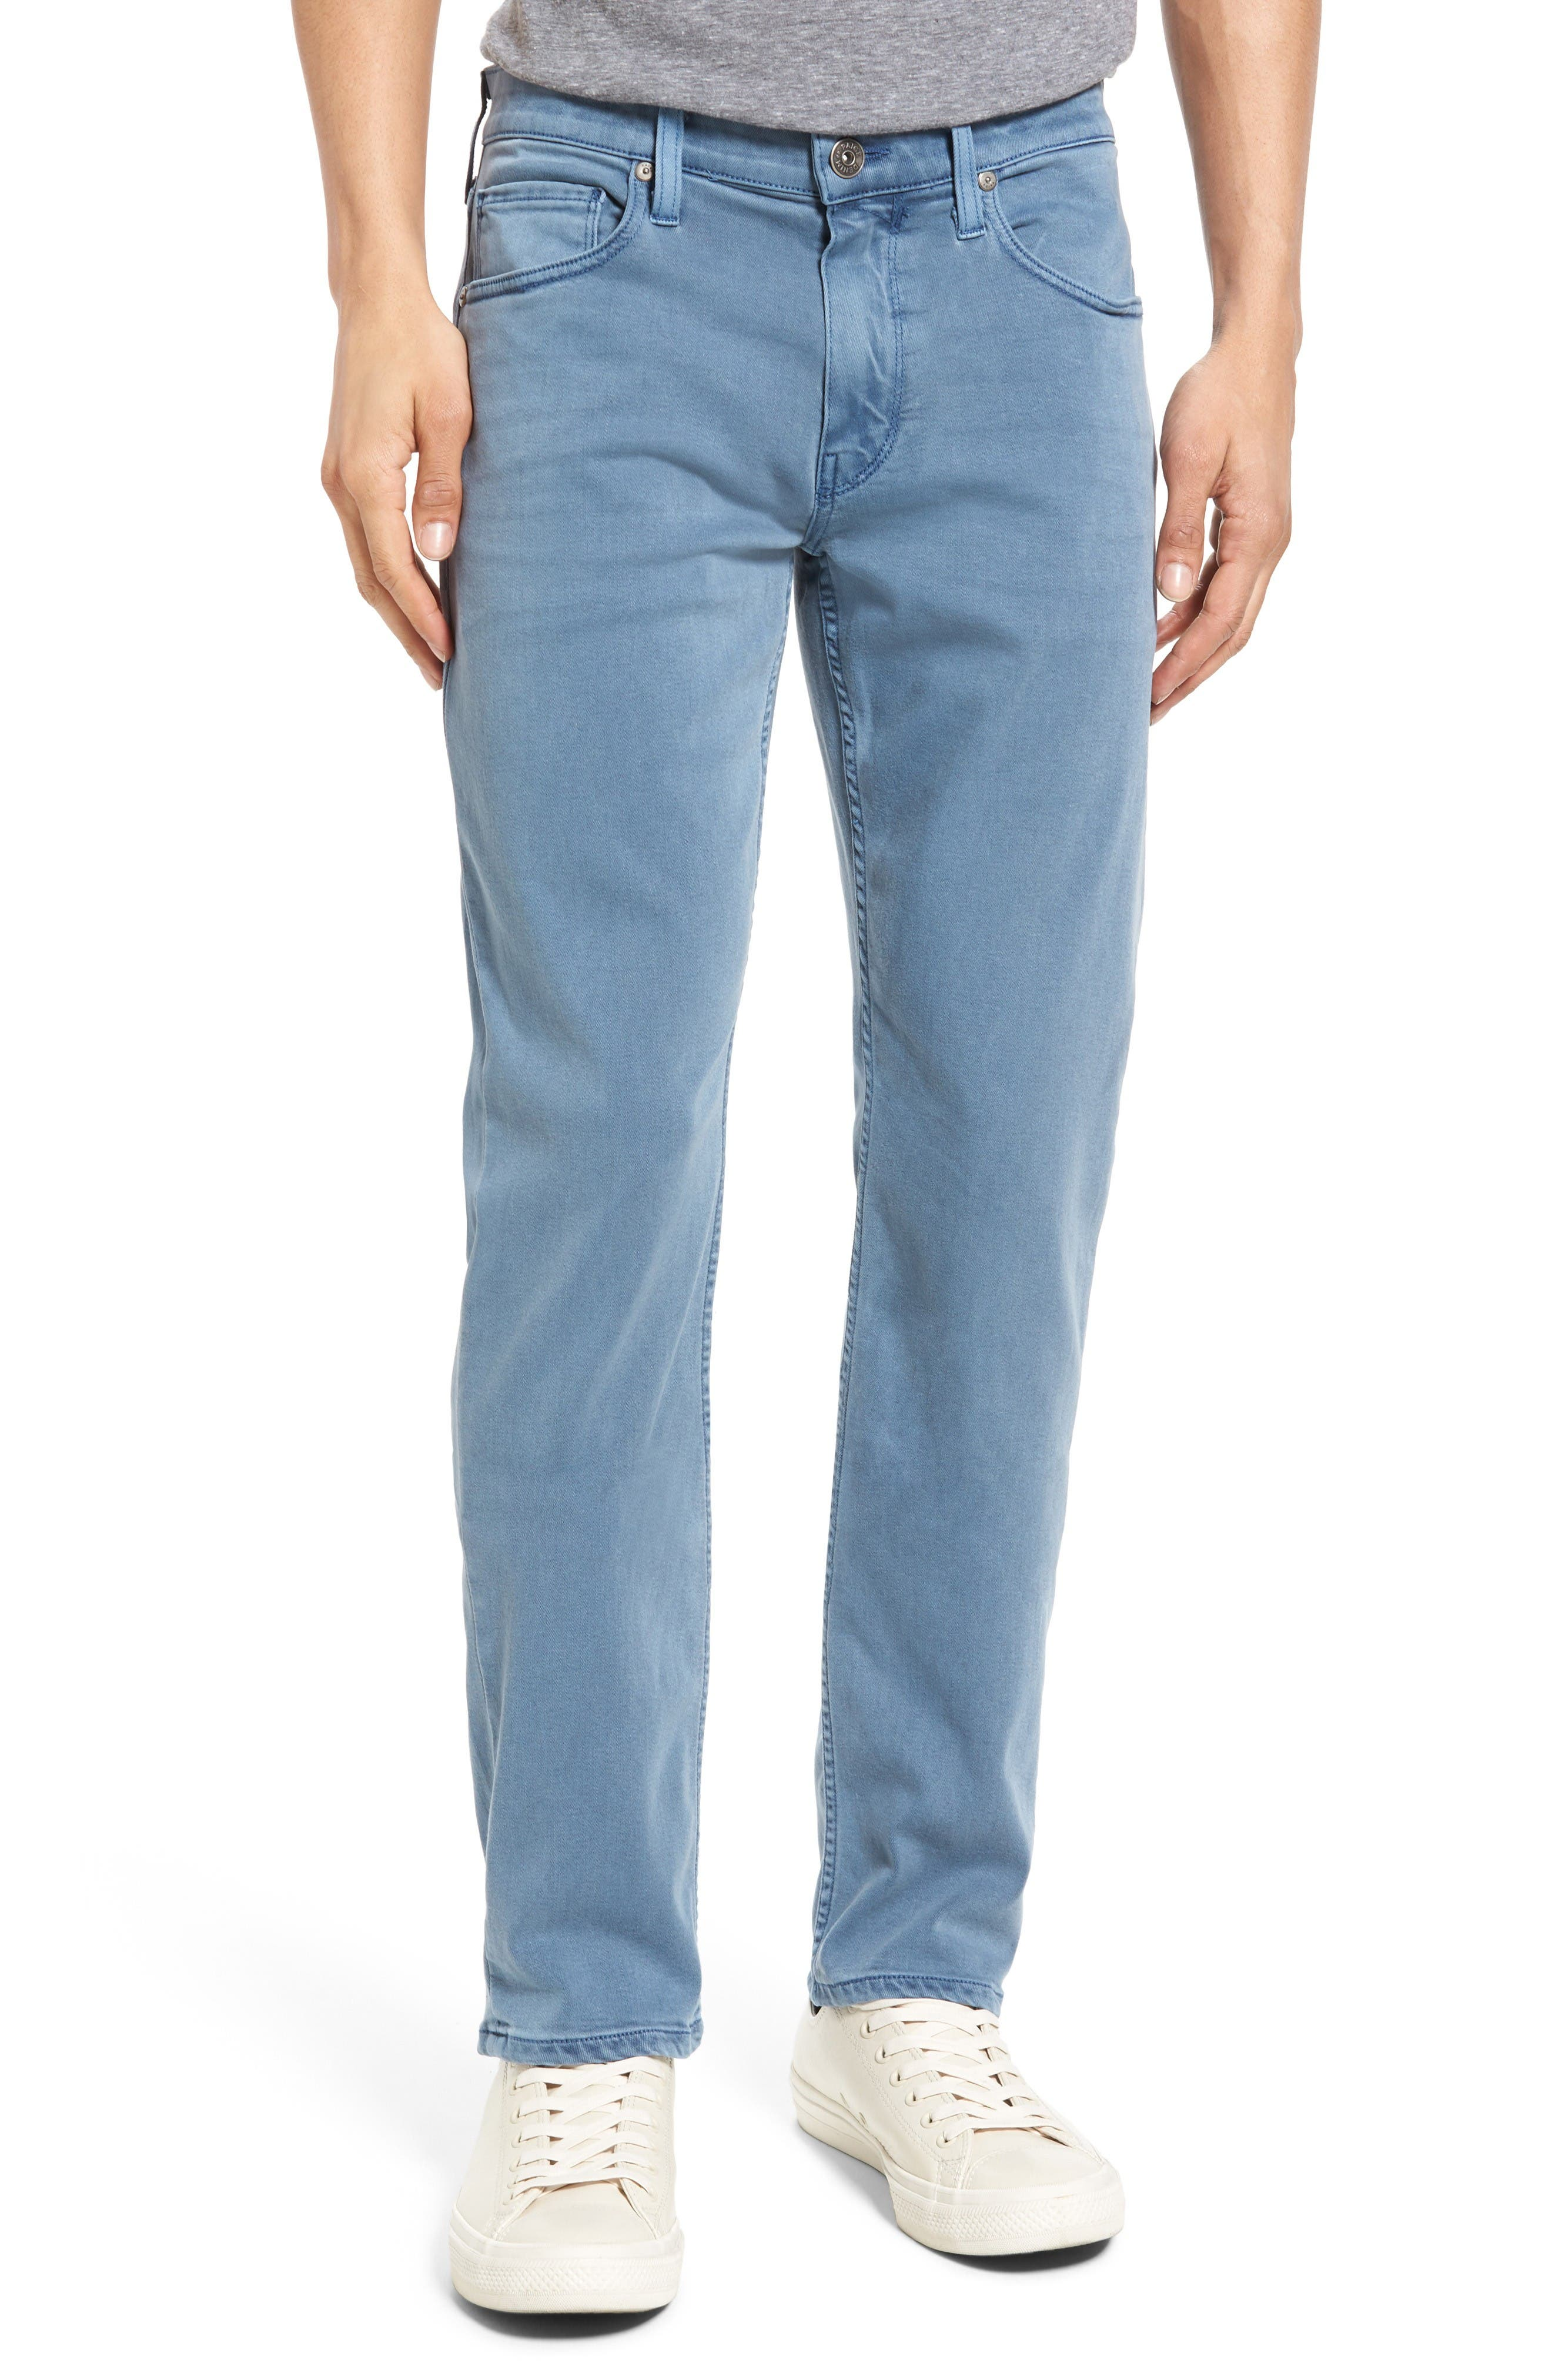 Transcend - Lennox Slim Fit Jeans,                         Main,                         color, Seascape